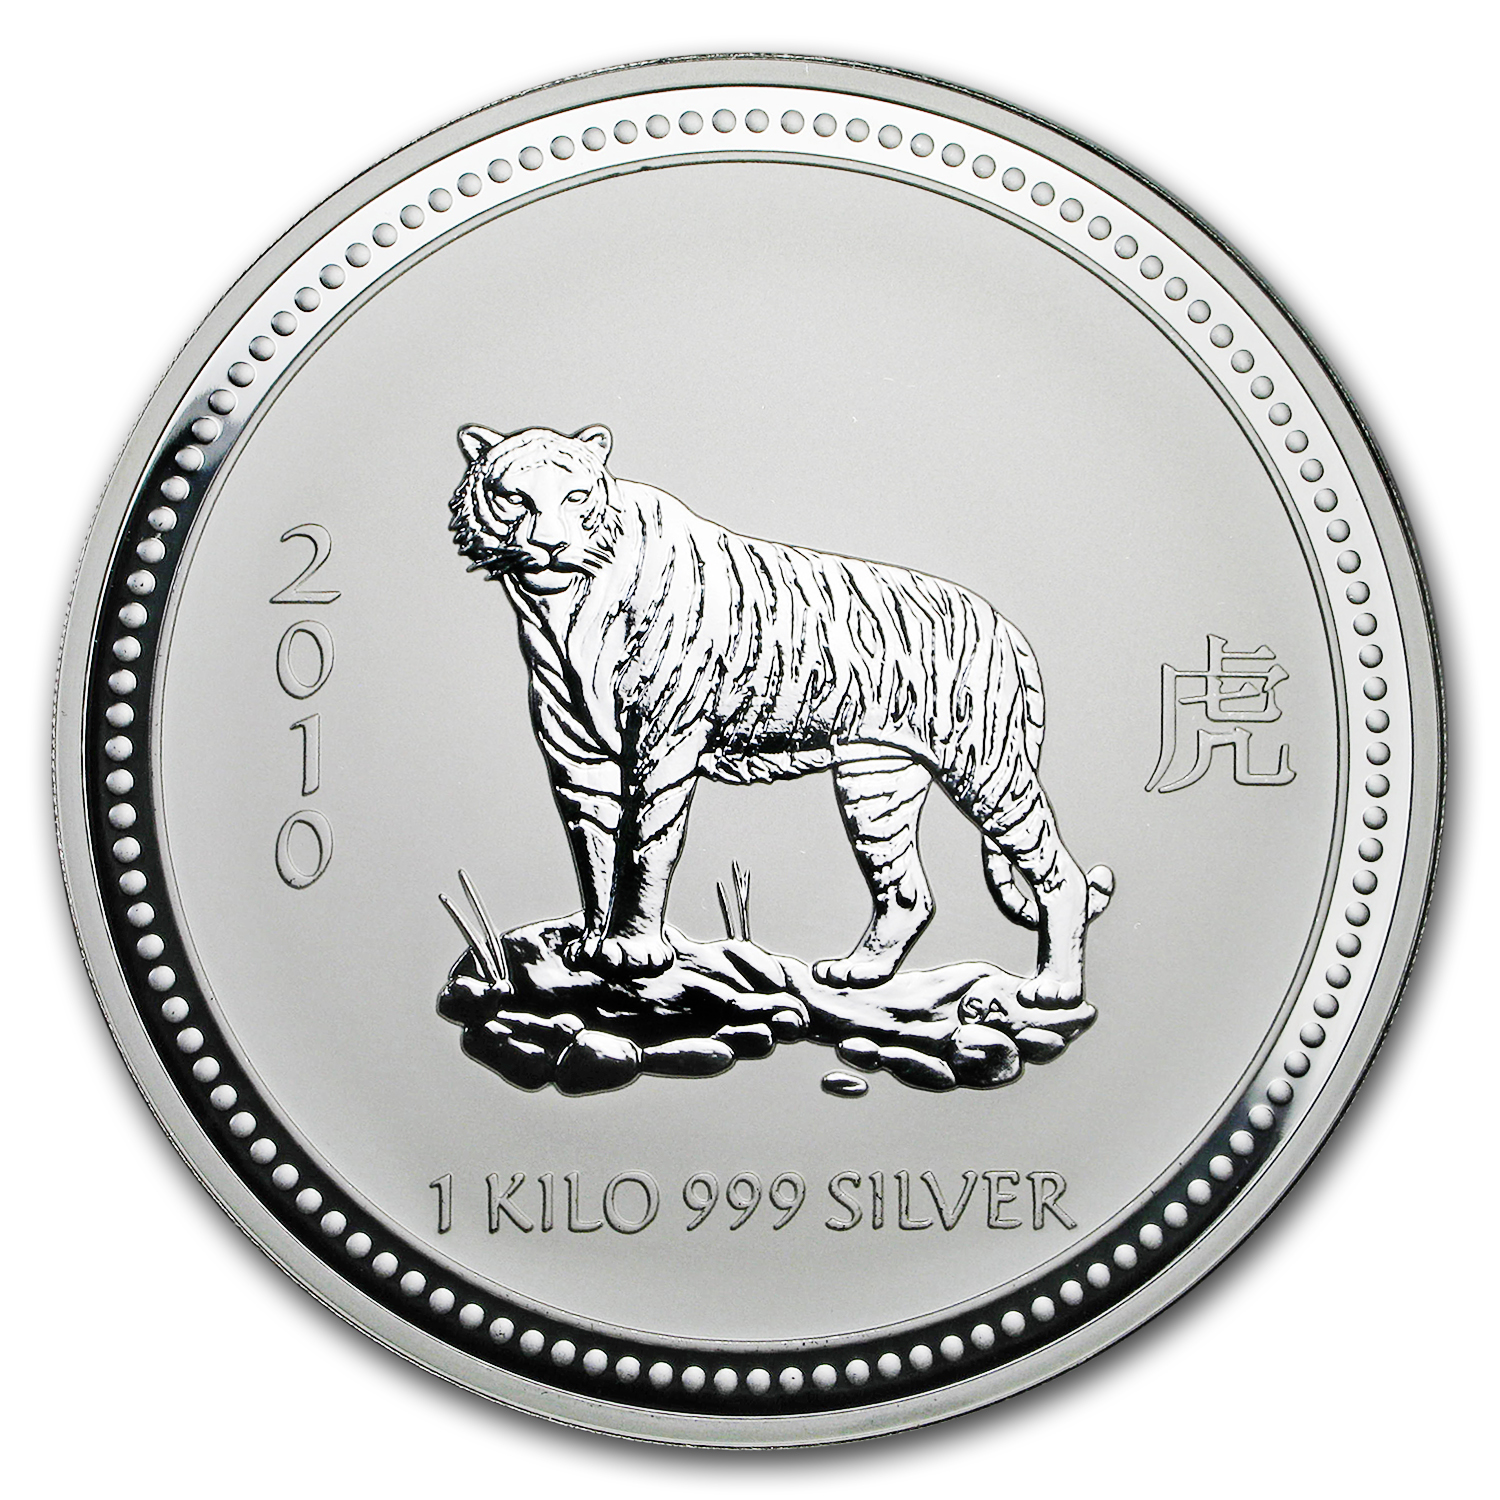 2010 1 kilo Silver Lunar Year of the Tiger (Series I)